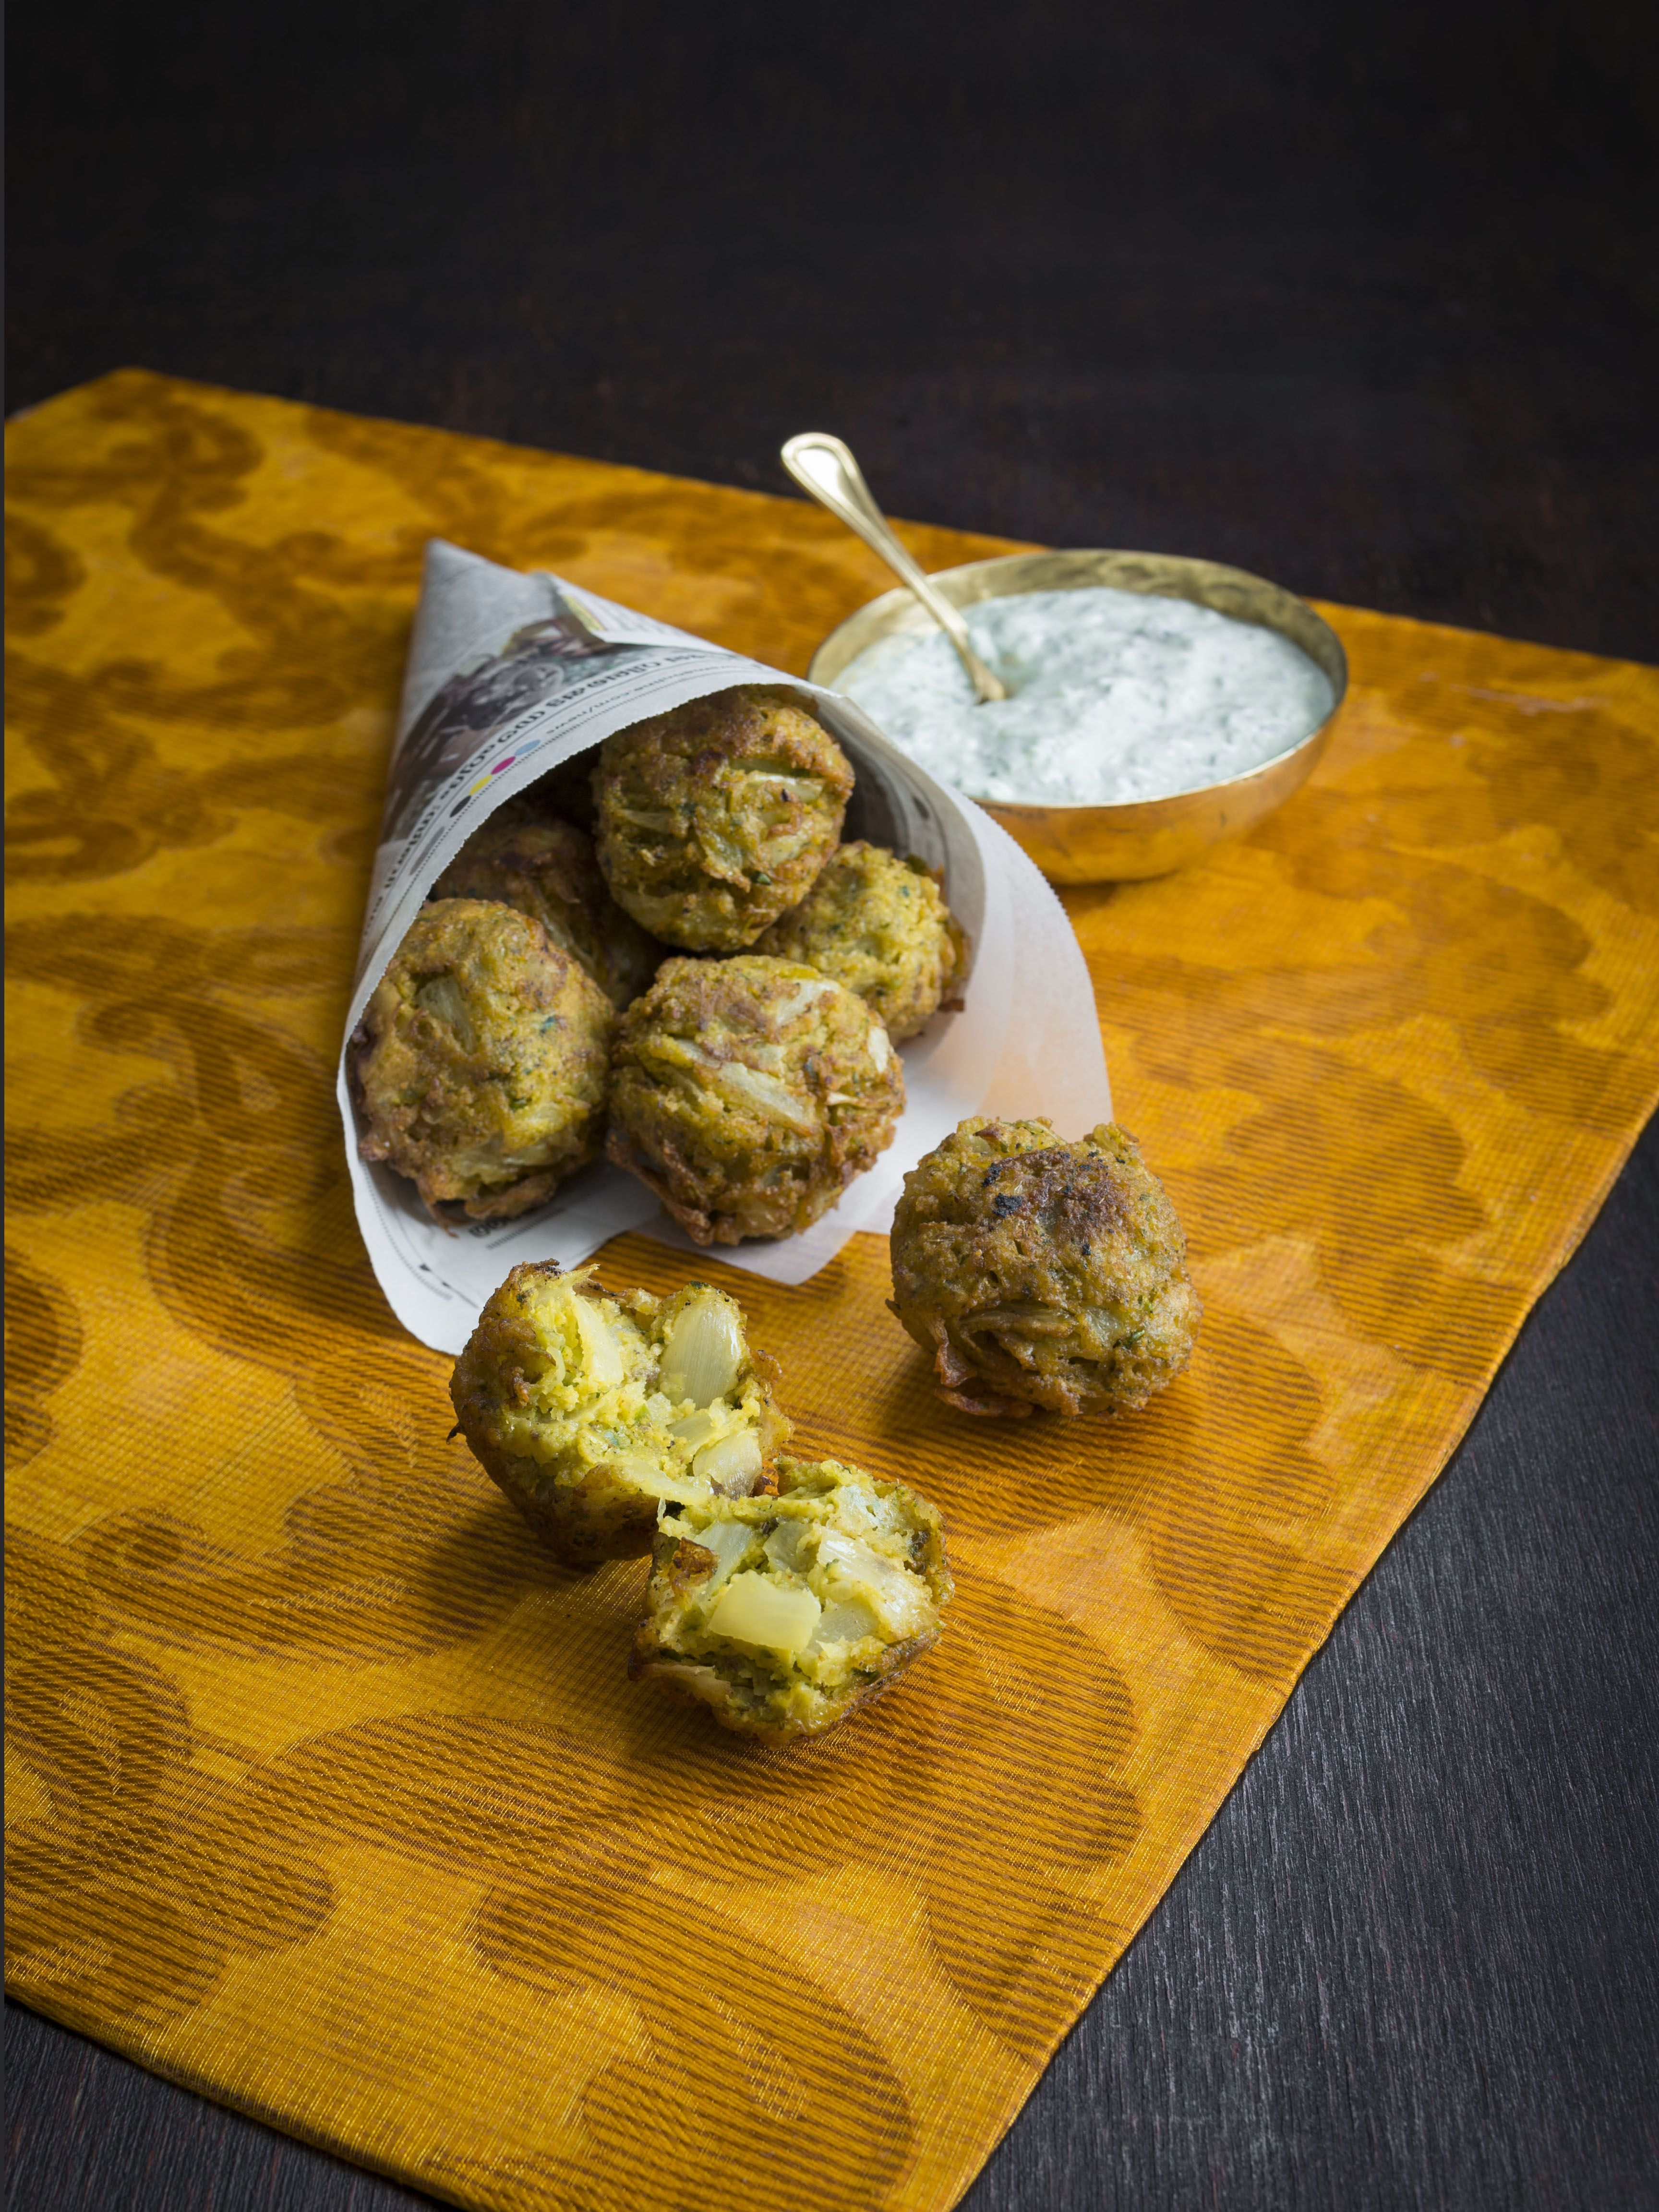 Thermomix onion bhaji flavours of india cookbook recipe chip thermomix onion bhaji flavours of india cookbook recipe chip forumfinder Gallery